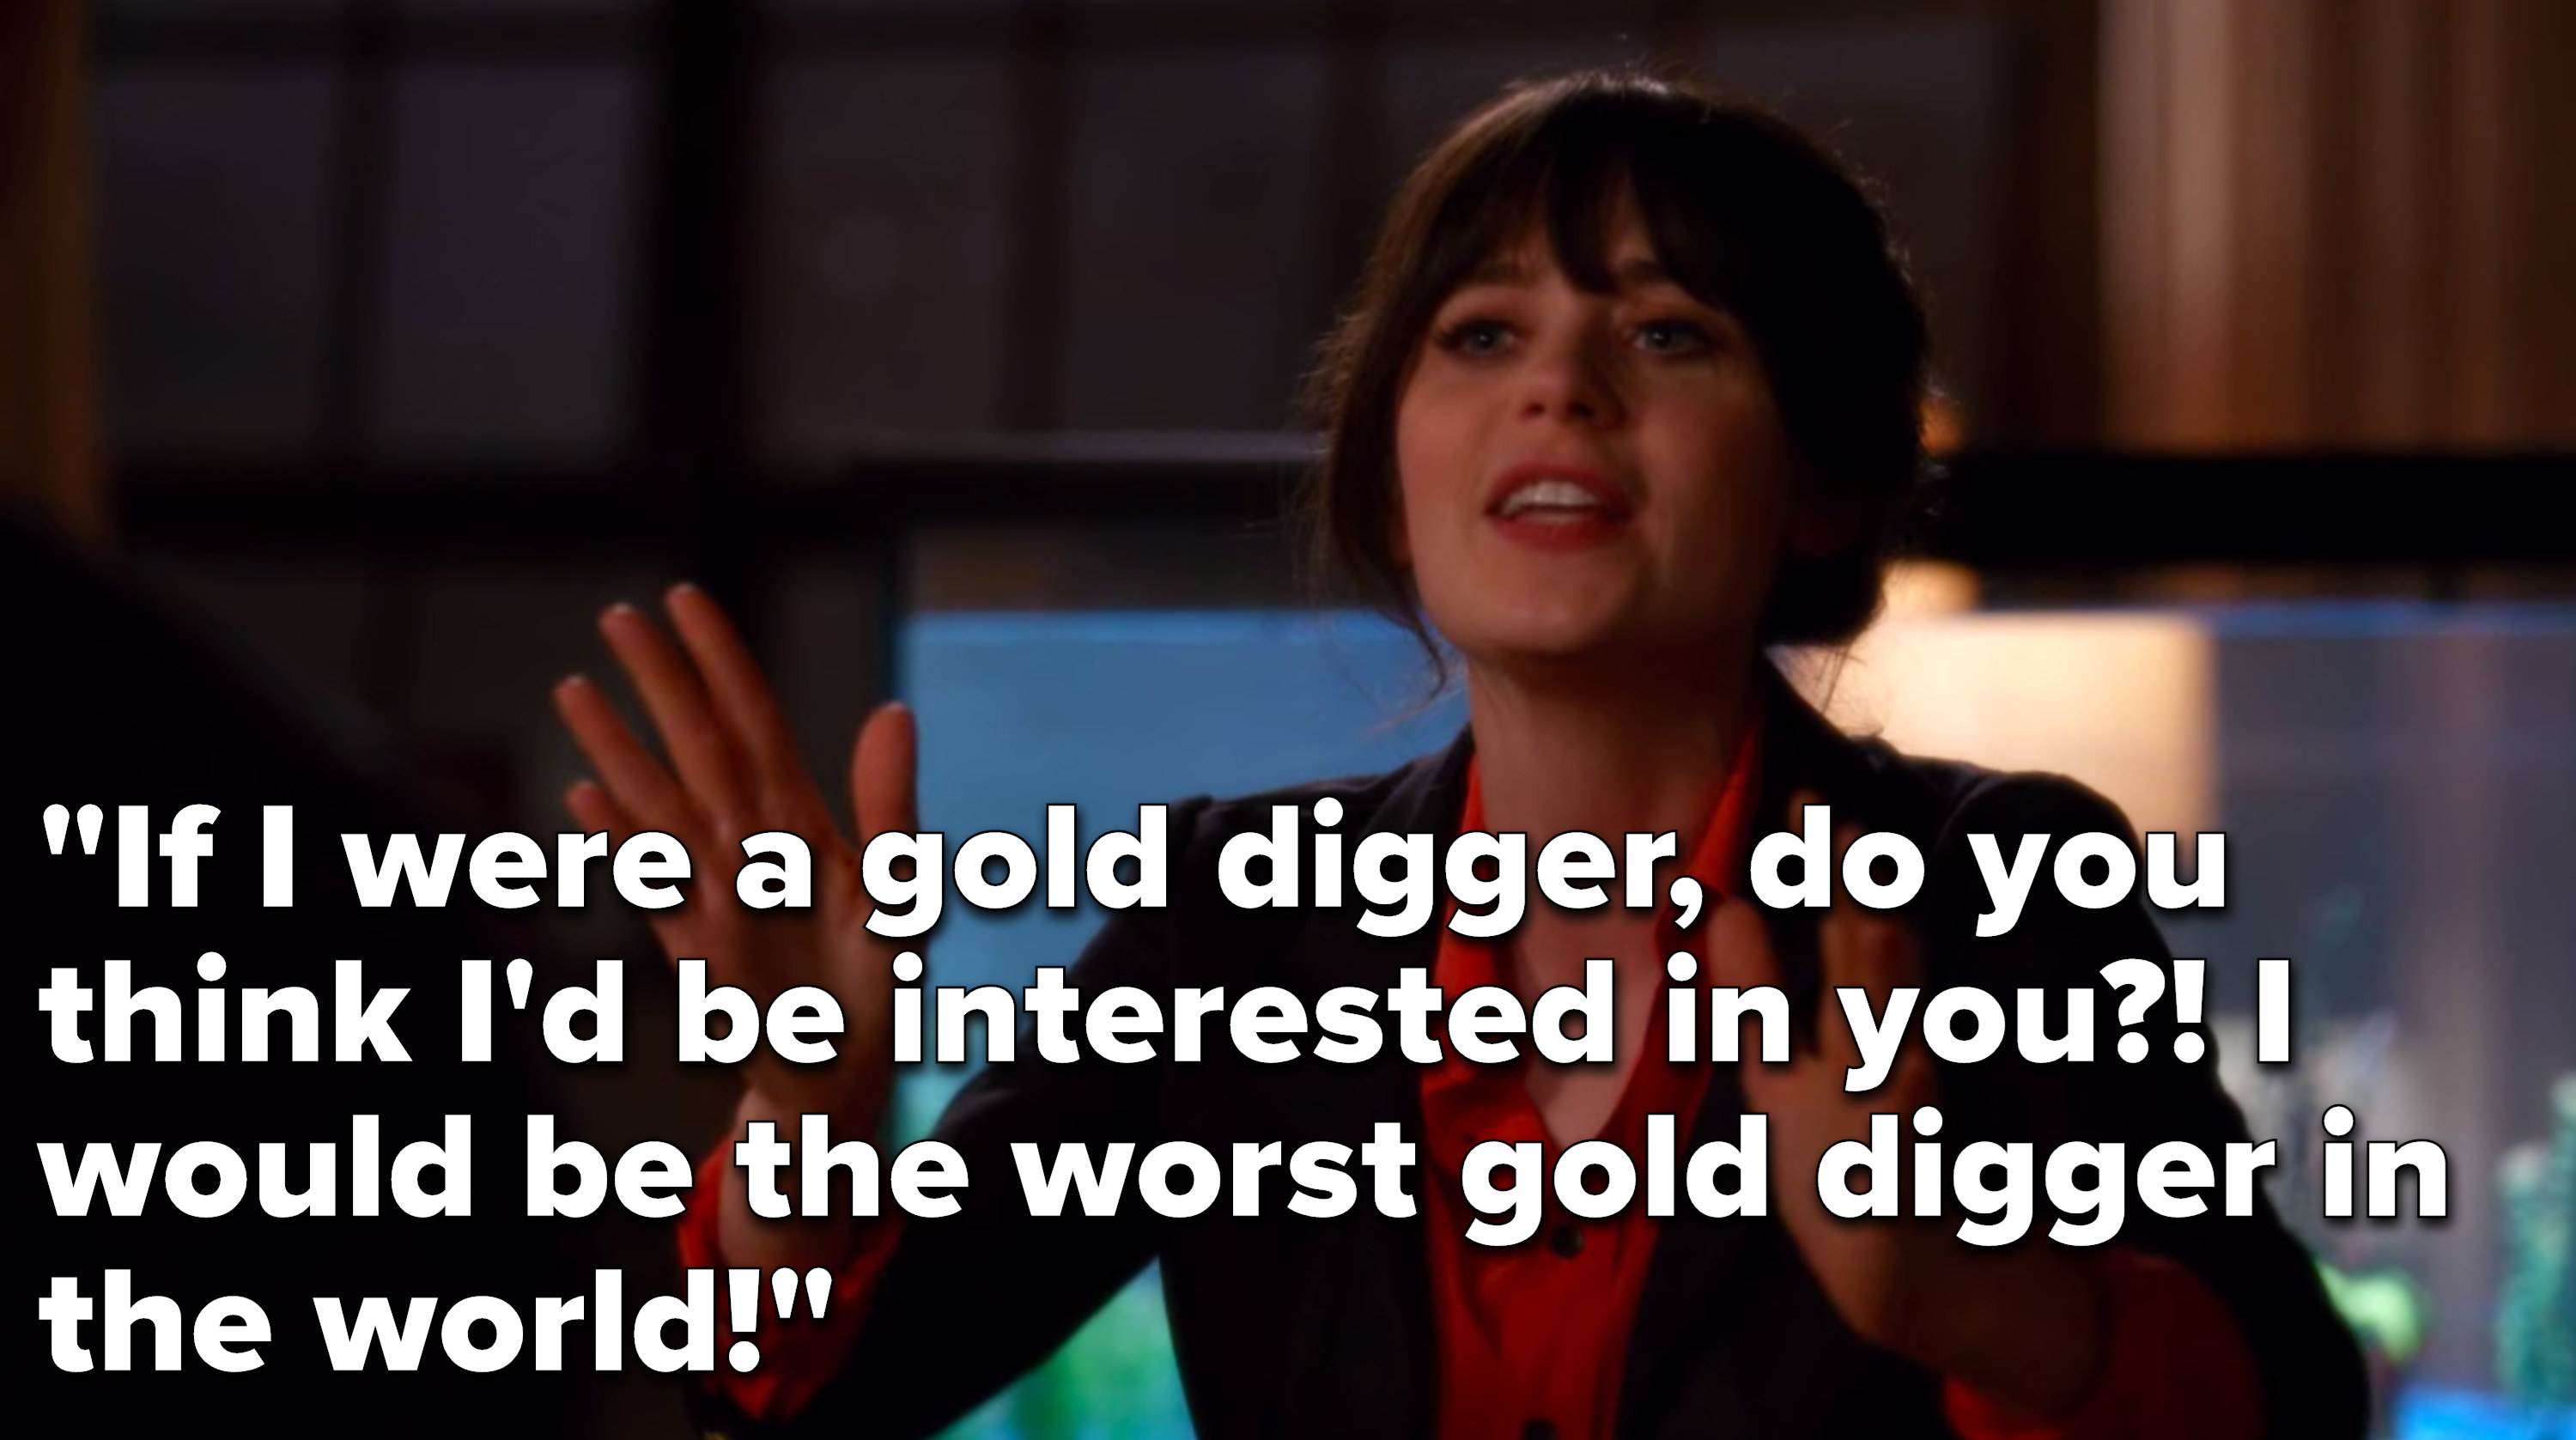 """Jess says, """"If I were a gold digger, do you think I'd be interested in you, I would be the worst gold digger in the world"""""""